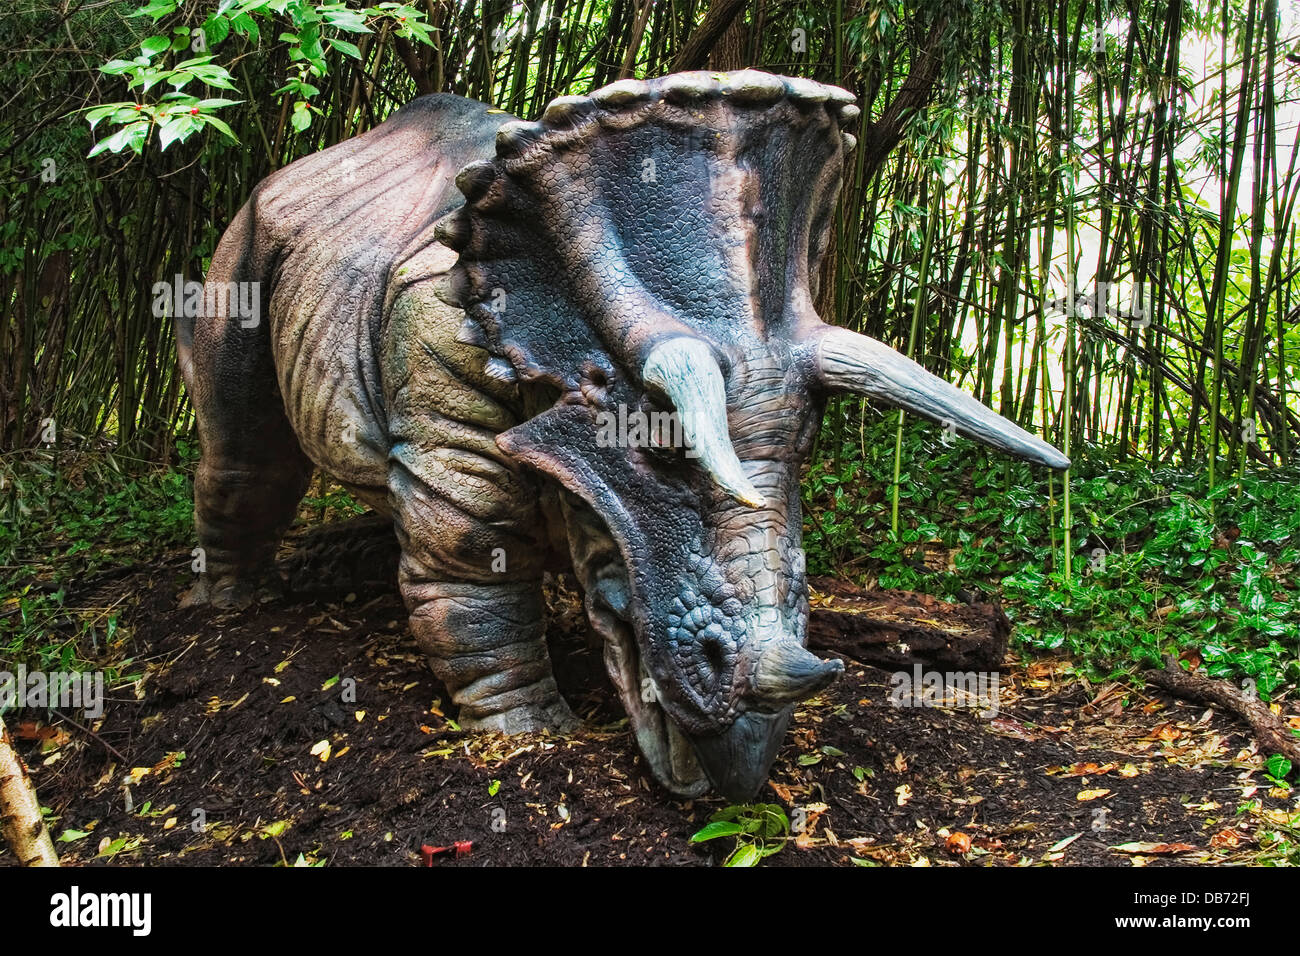 """Triceratops (which means """"three horned face"""") dinosaur from the late Cretaceous period. Stock Photo"""